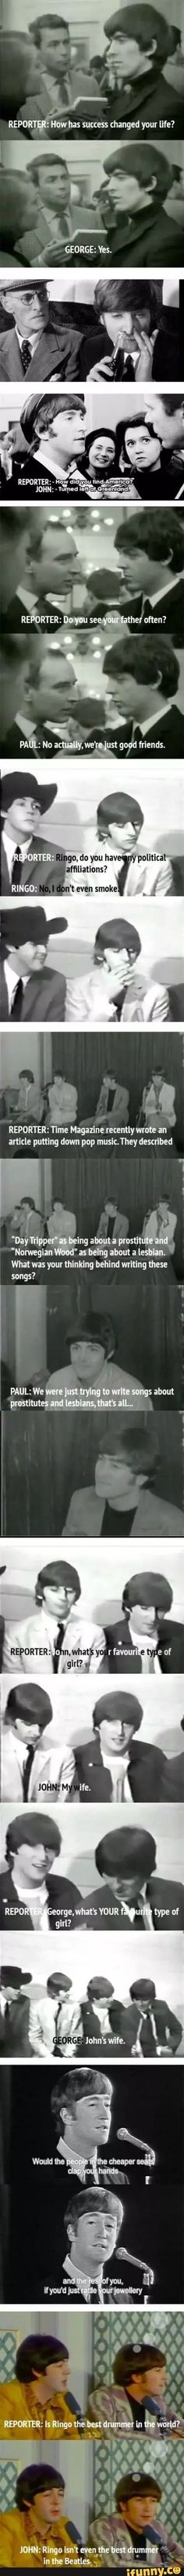 The Beatles, ladies and gentlemen